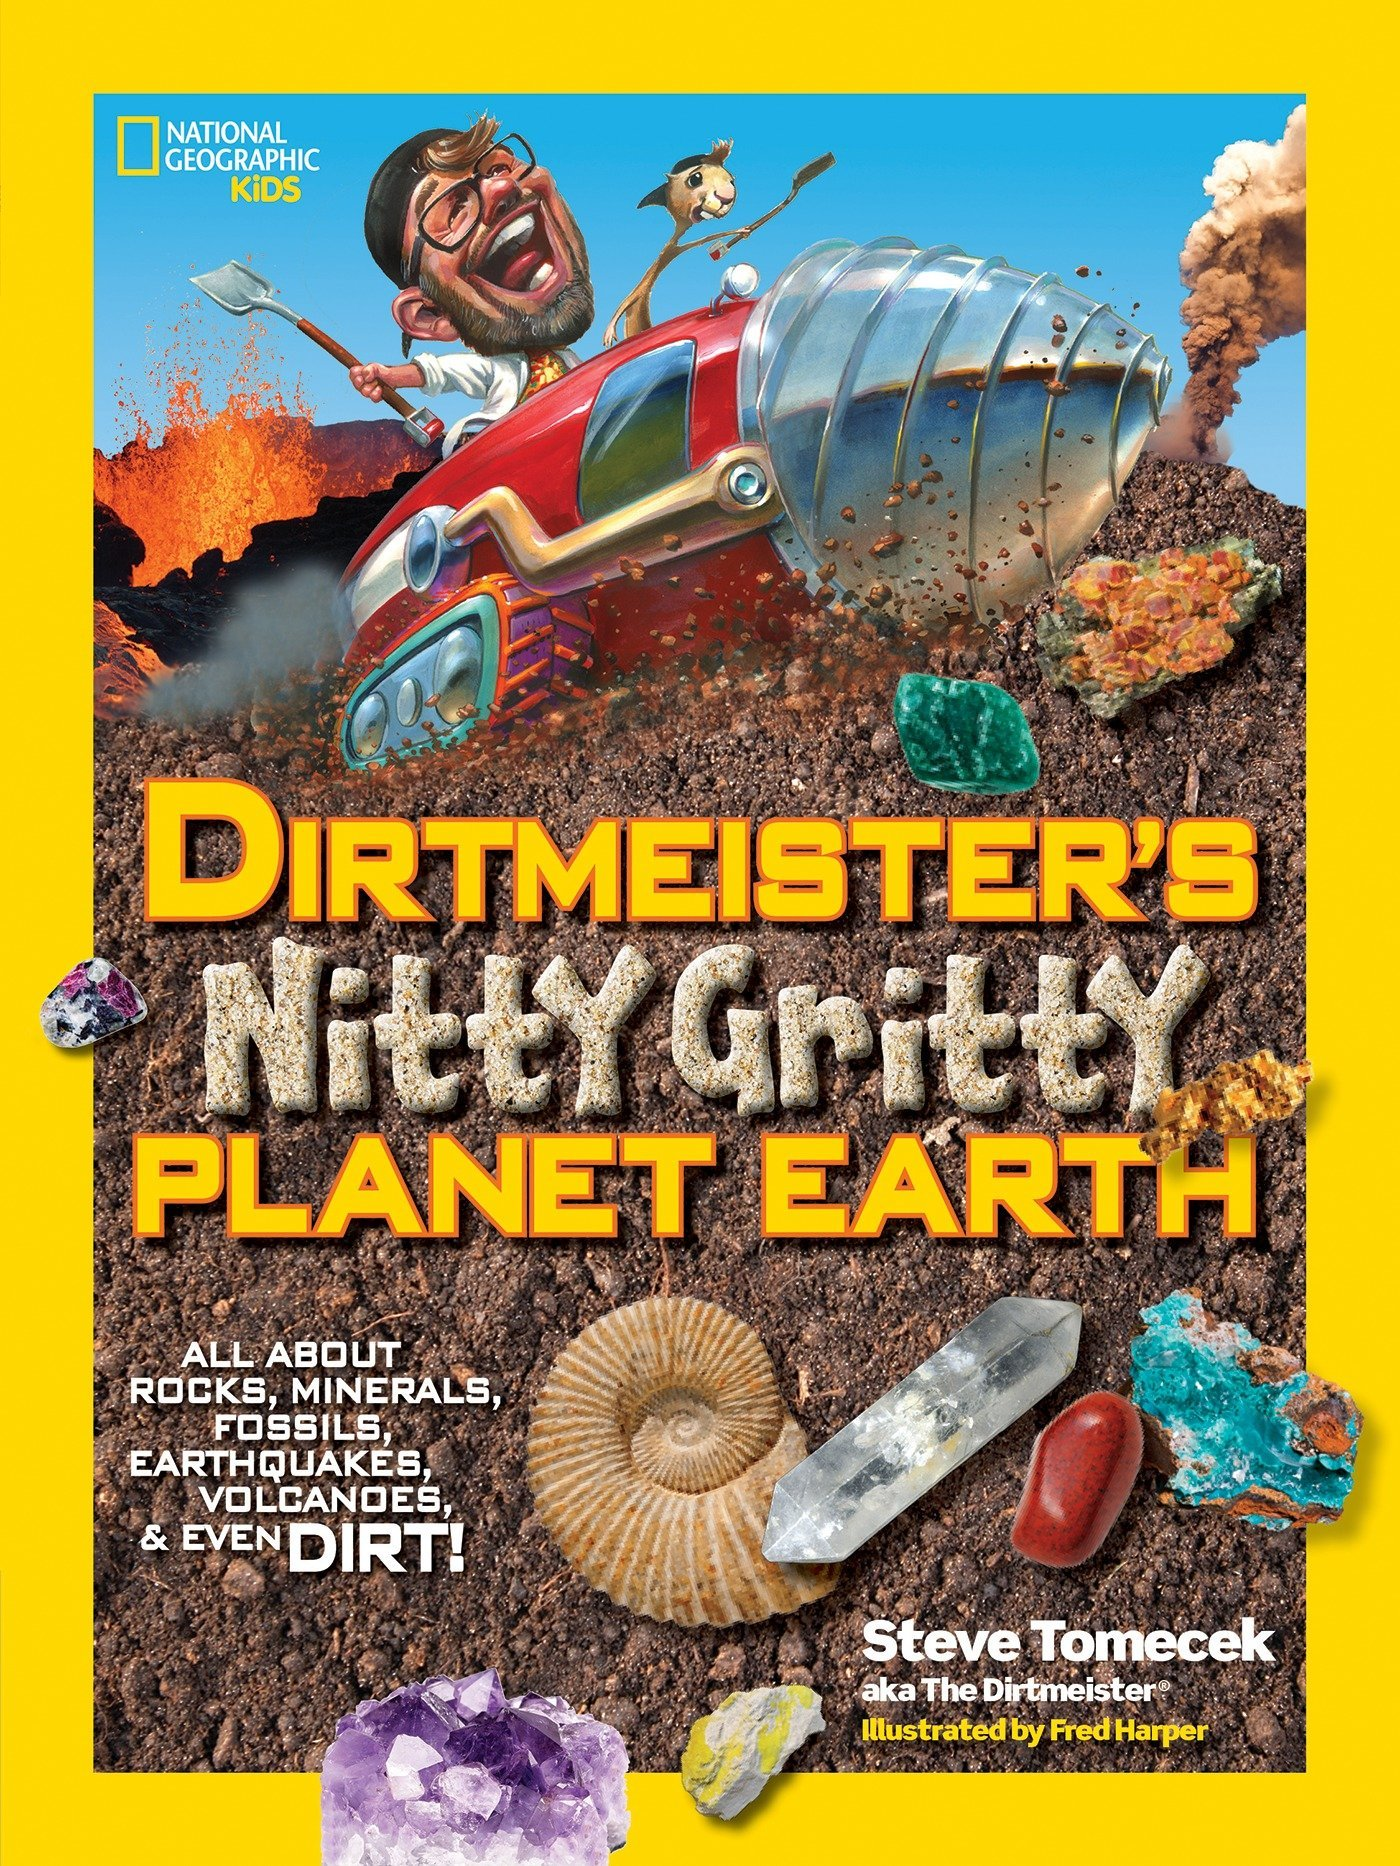 Dirtmeister's Nitty Gritty Planet Earth: All About Rocks, Minerals, Fossils, Earthquakes, Volcanoes, & Even Dirt! (National Geographic Kids) PDF